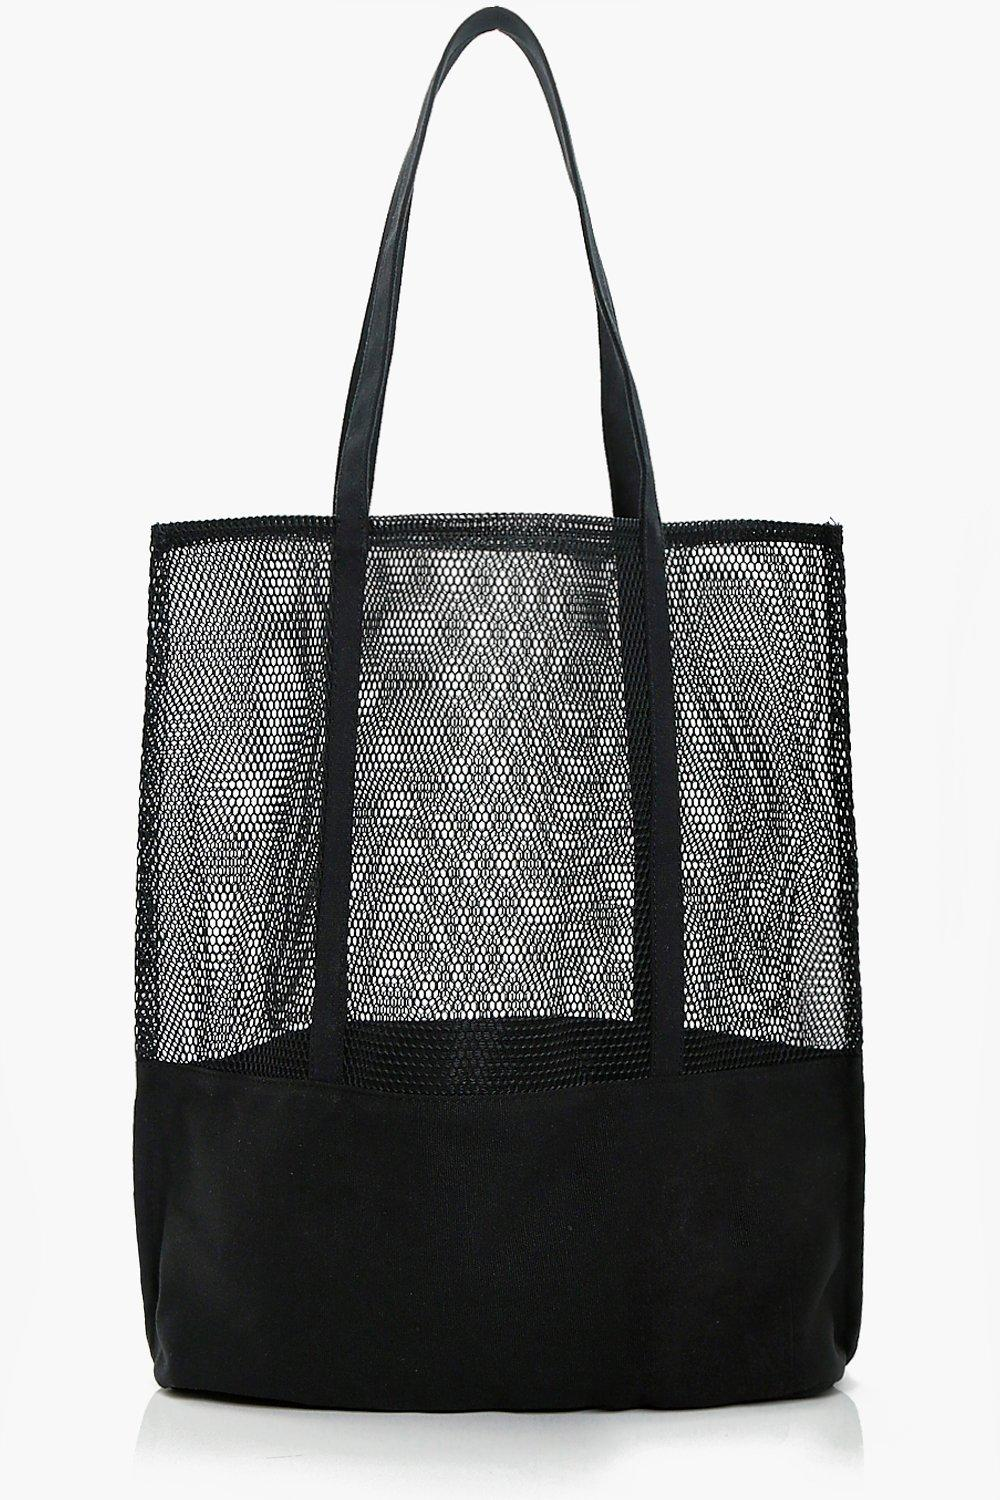 Sports Mesh Shopper - black - Hannah Sports Mesh S